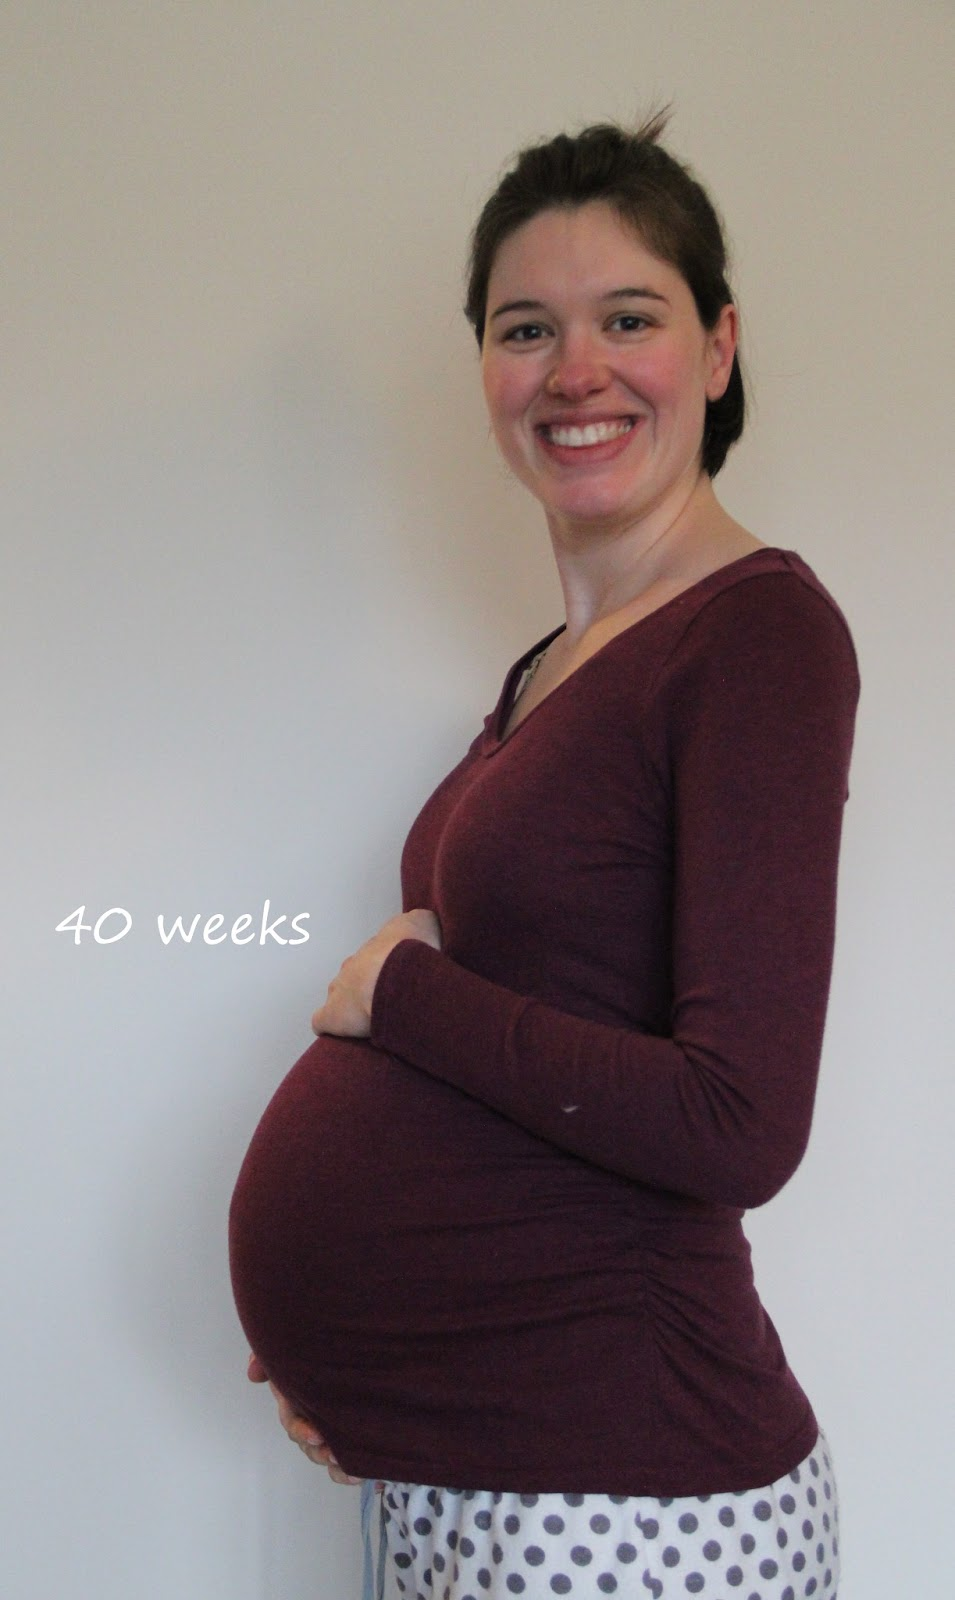 40 week belly bump